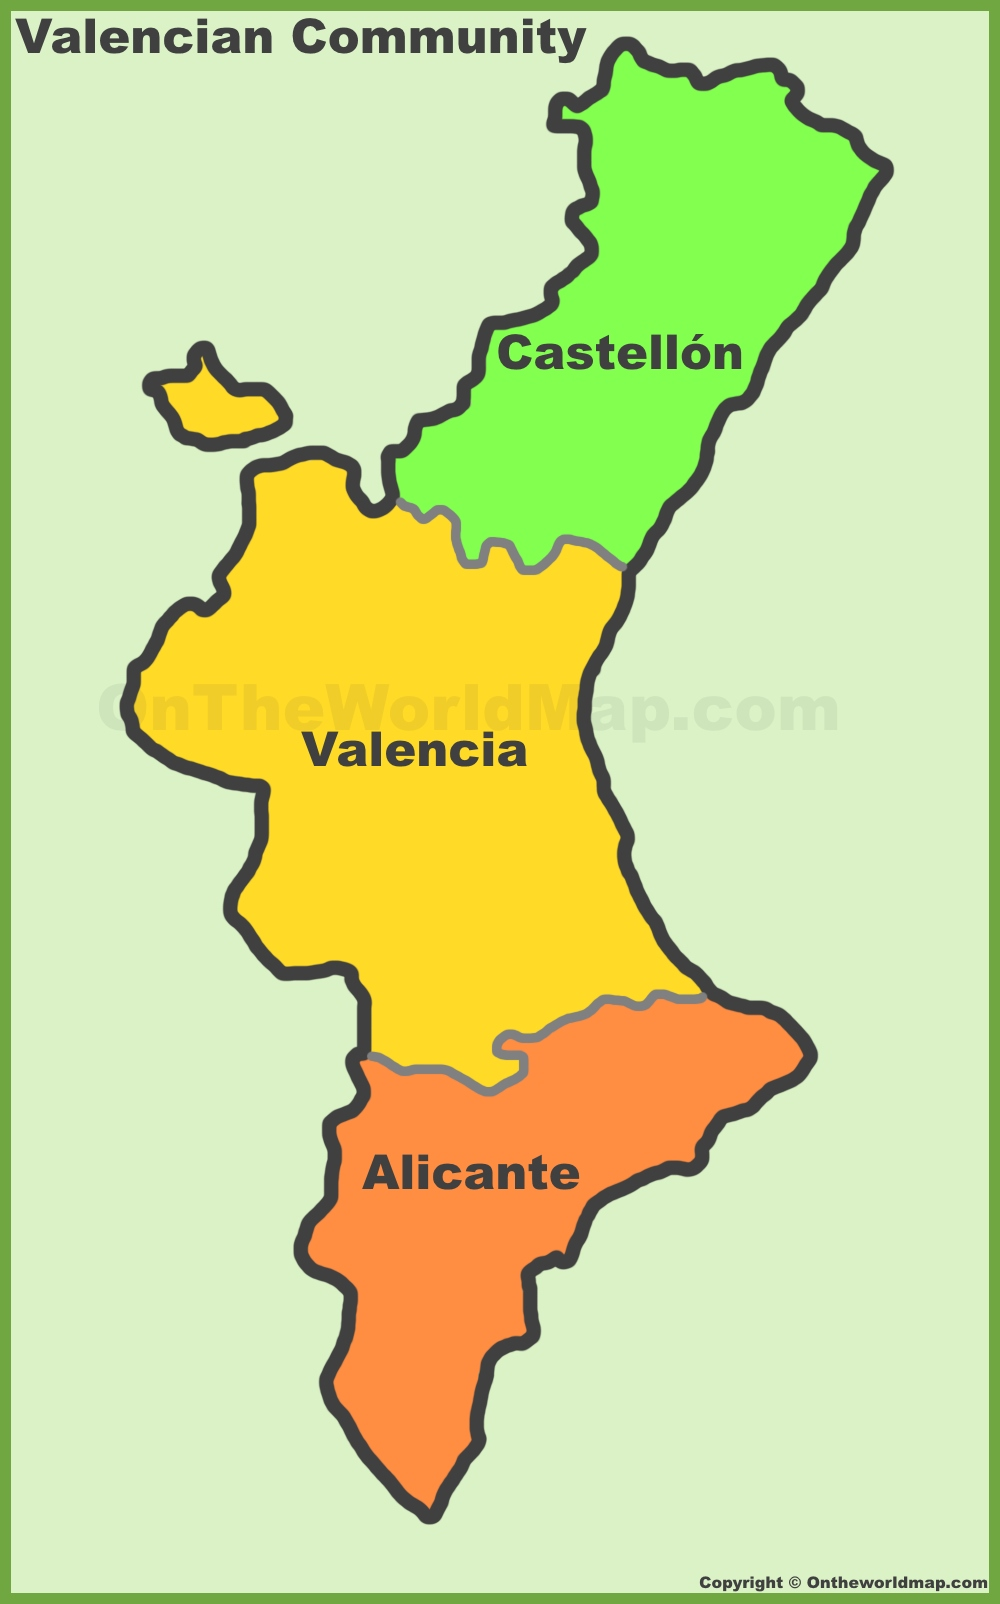 Valencian Community provinces map